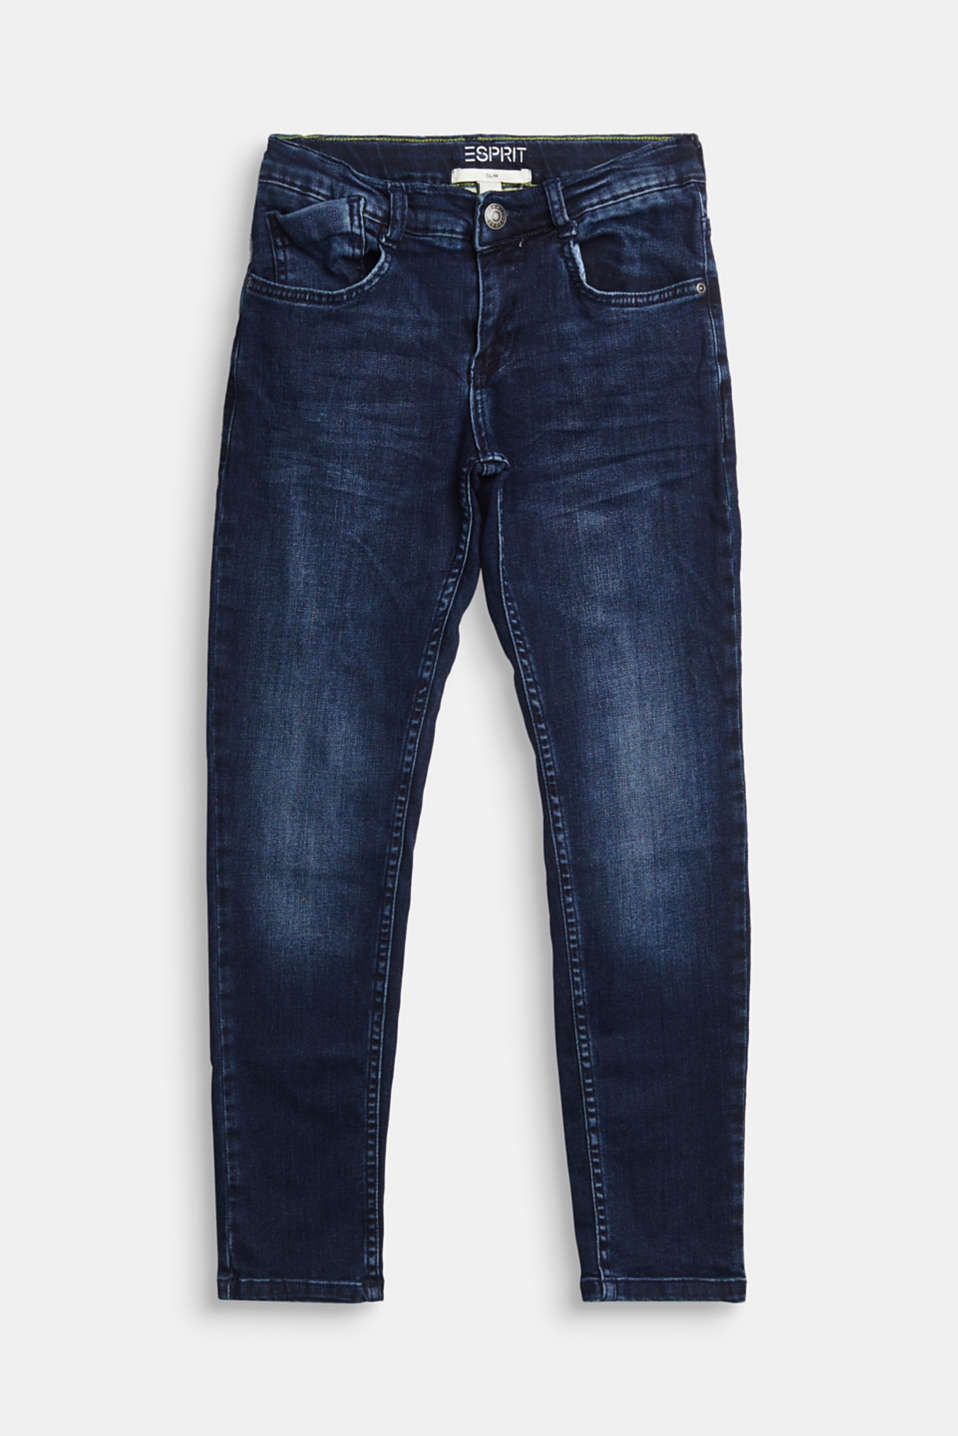 Esprit - trousers denim